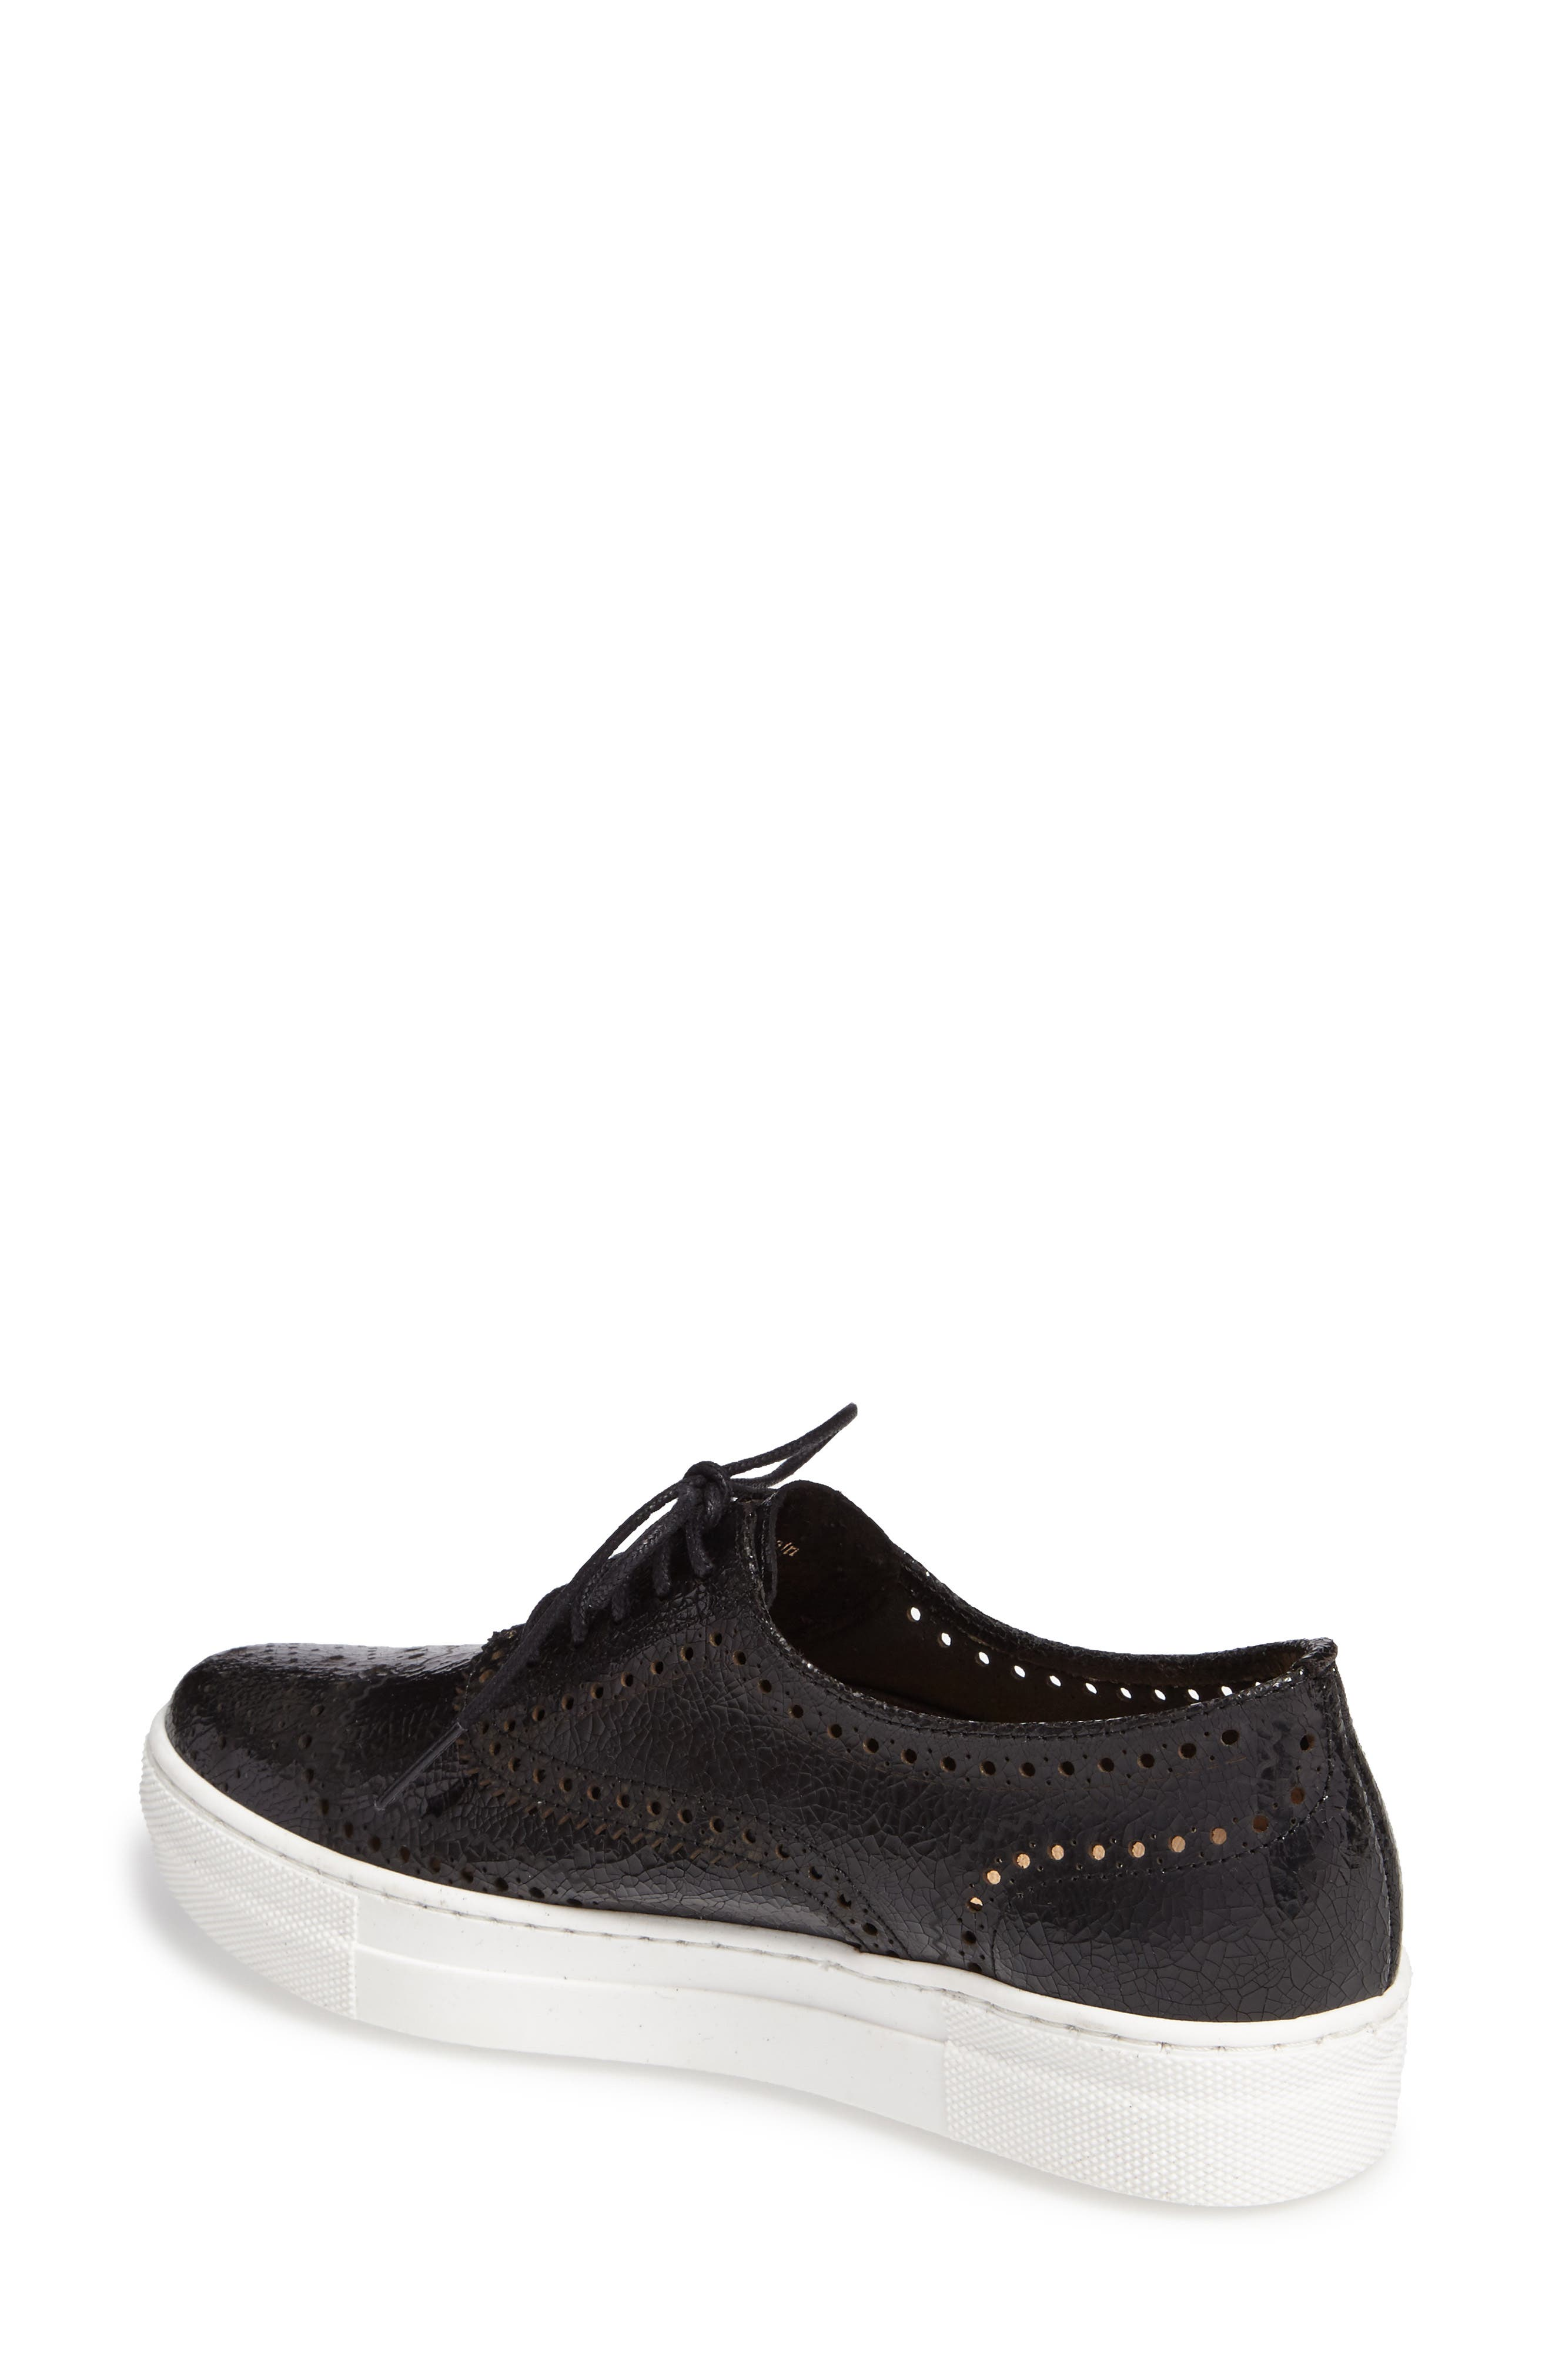 Alternate Image 2  - Shellys London Kimmie Perforated Platform Sneaker (Women)